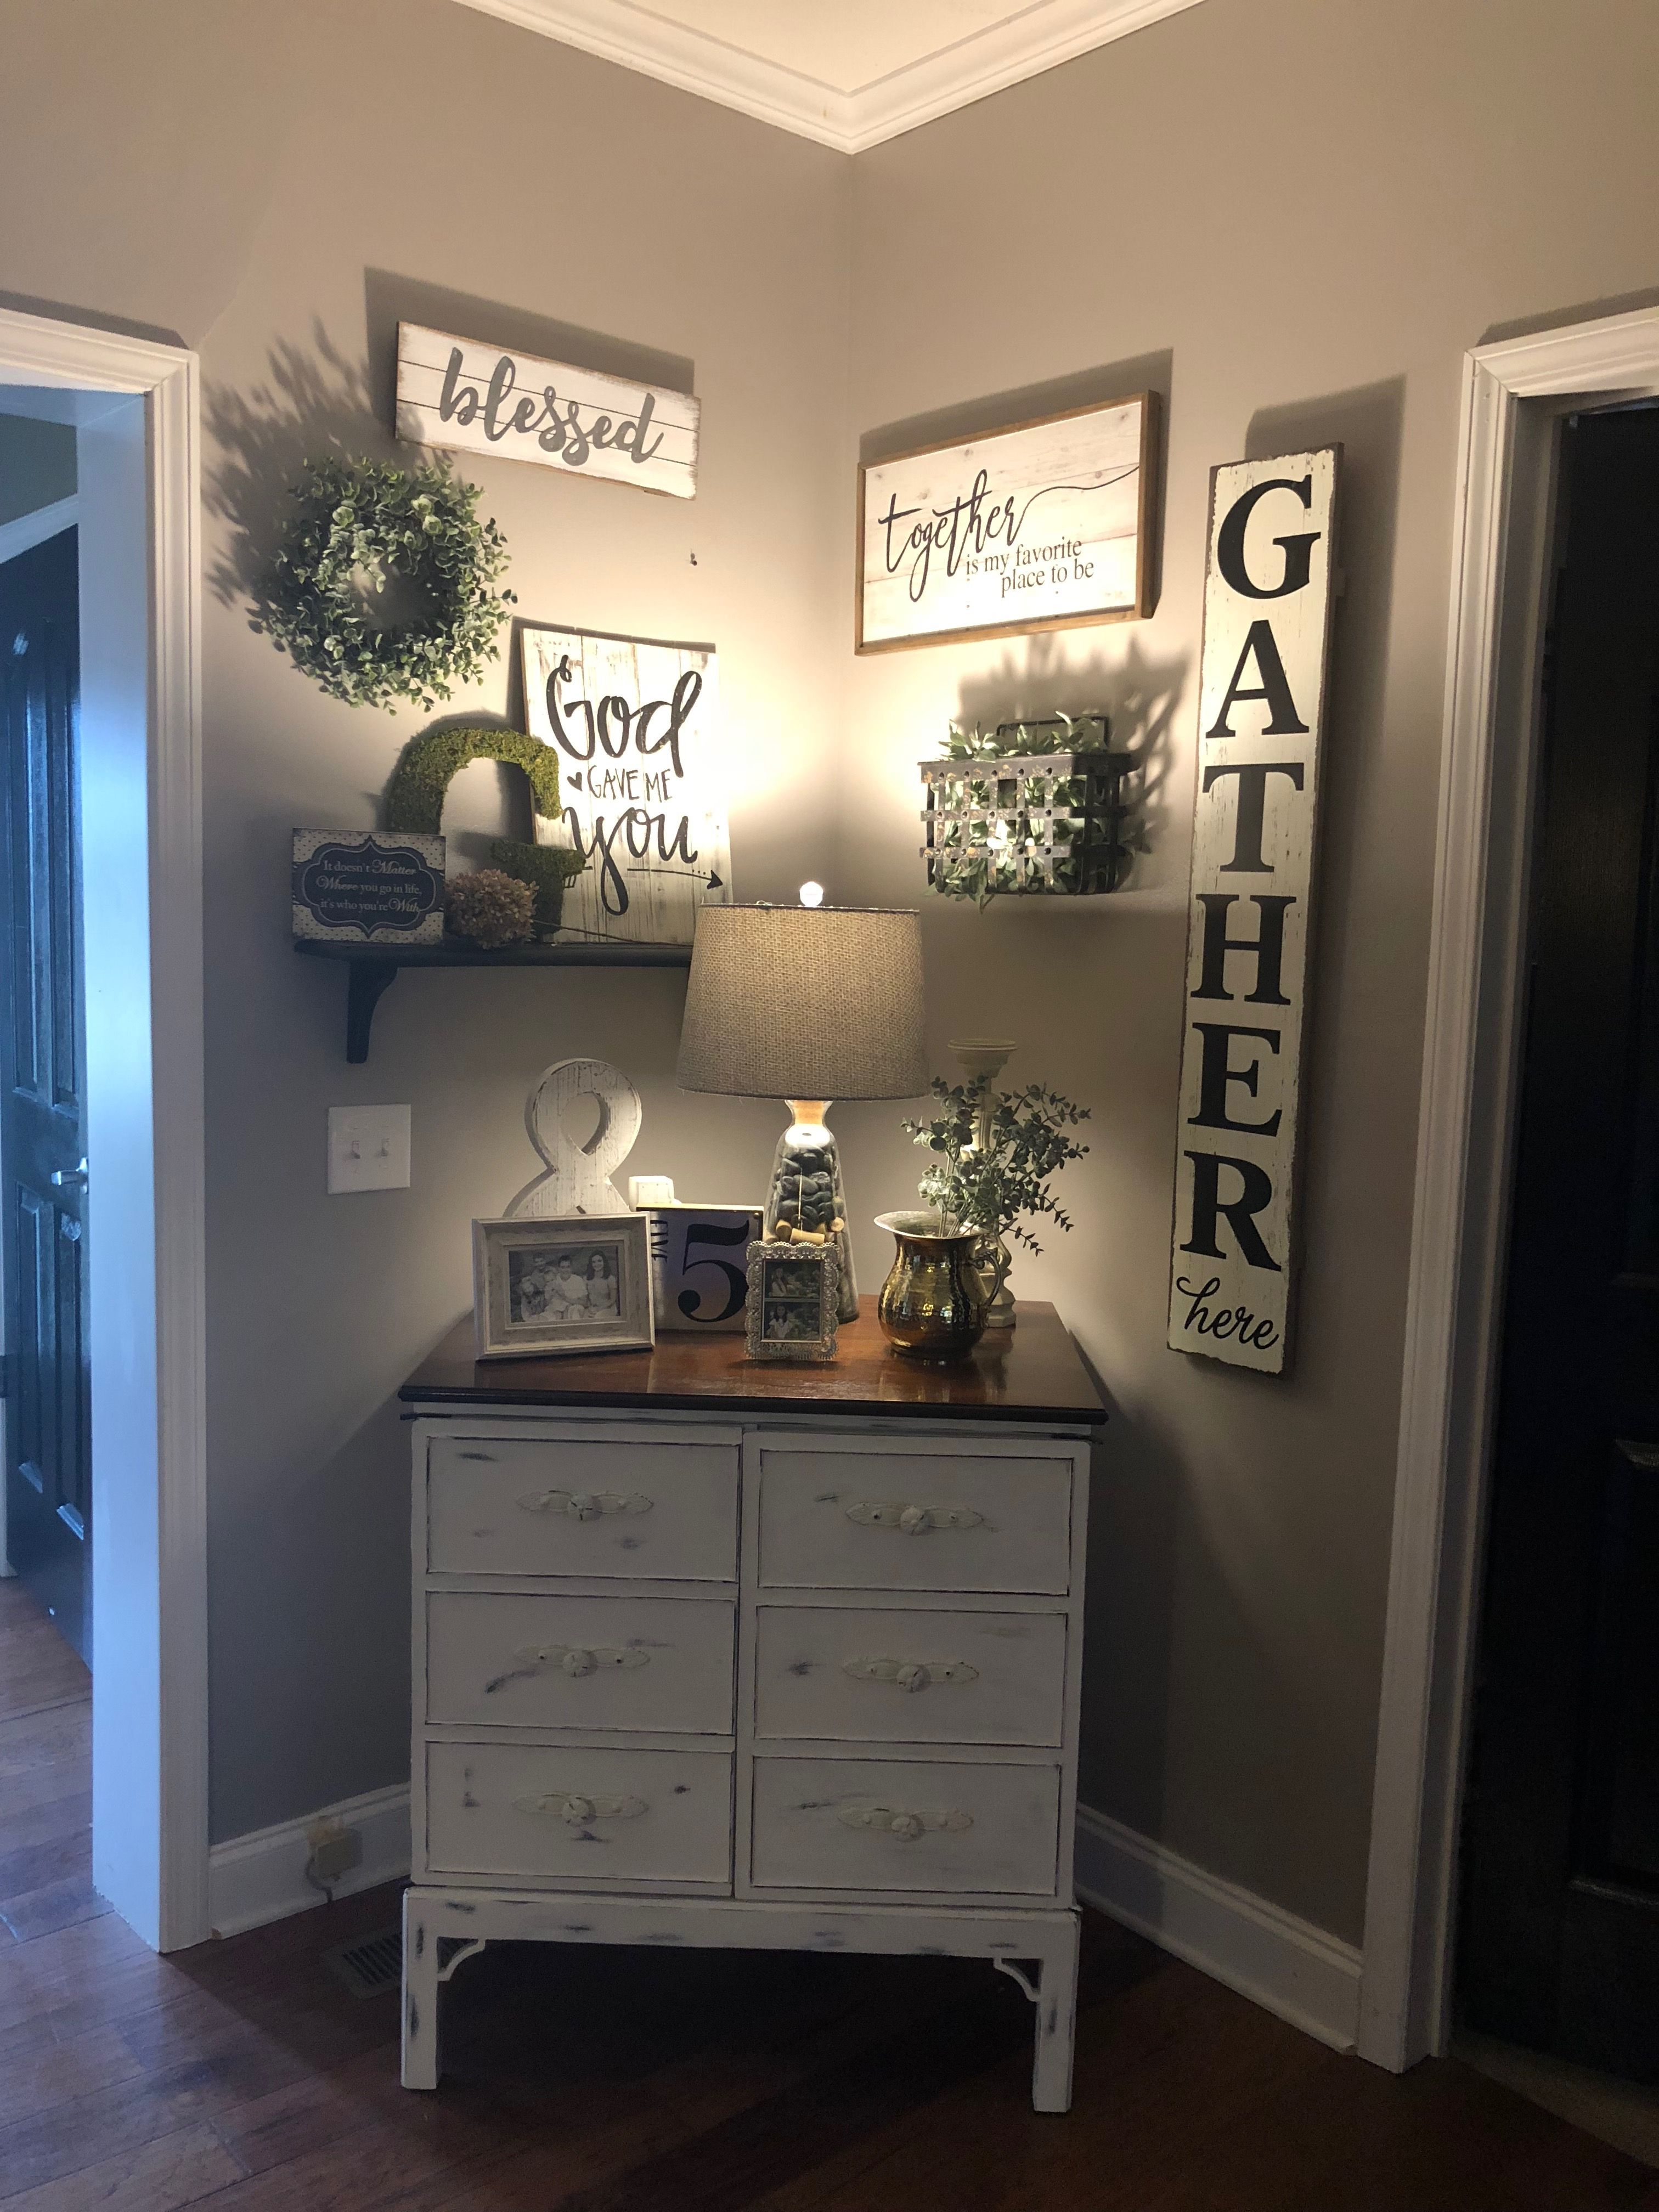 Ahhthe perfect amount of farmhouse style! I distressed the